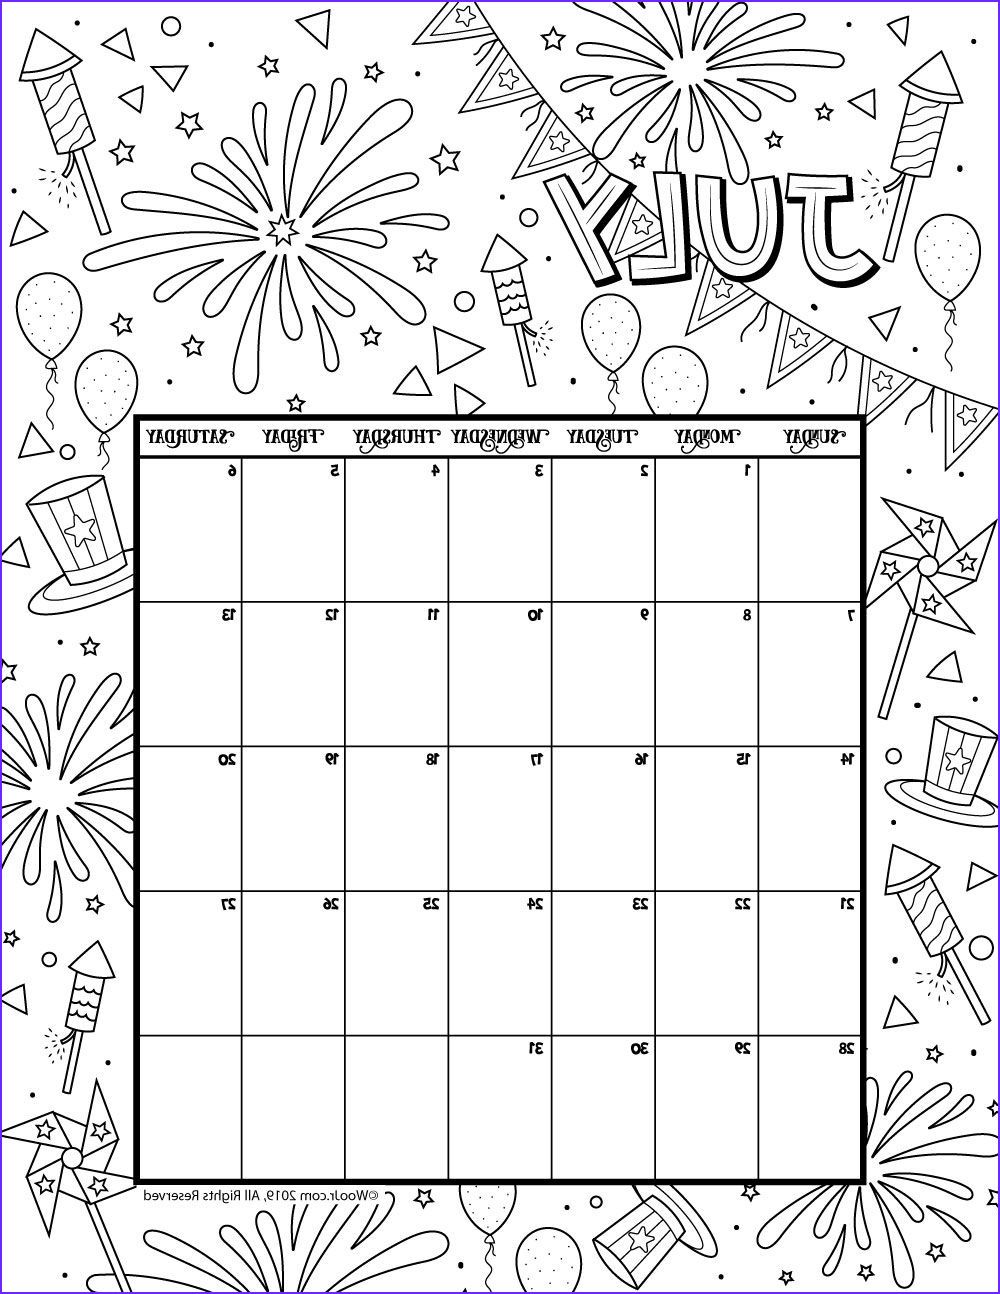 Coloring Calendar Beautiful Image July 2019 Coloring Calendar Hafsaa Pins